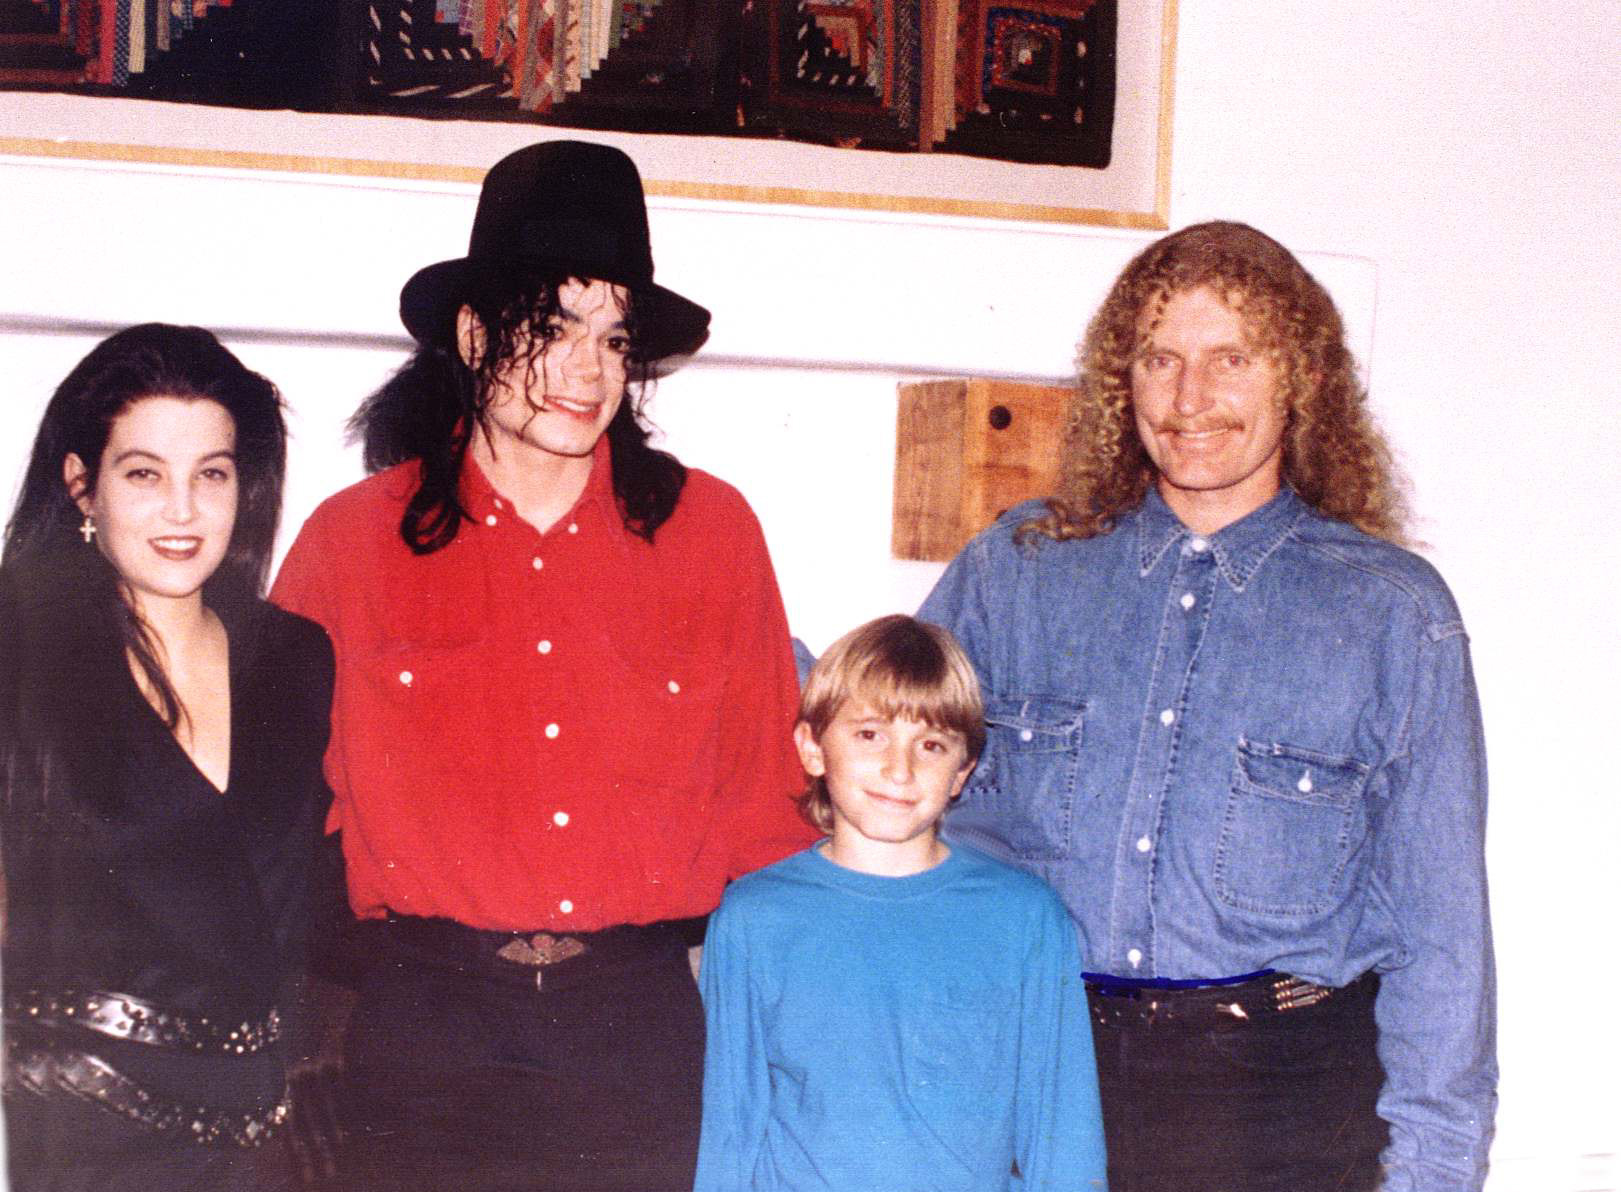 Australian artiste Brett Livingston Strong poses with his son Stason, pop star Michael Jackson and Lisa Marie Presley in August 1994. (Getty Images)